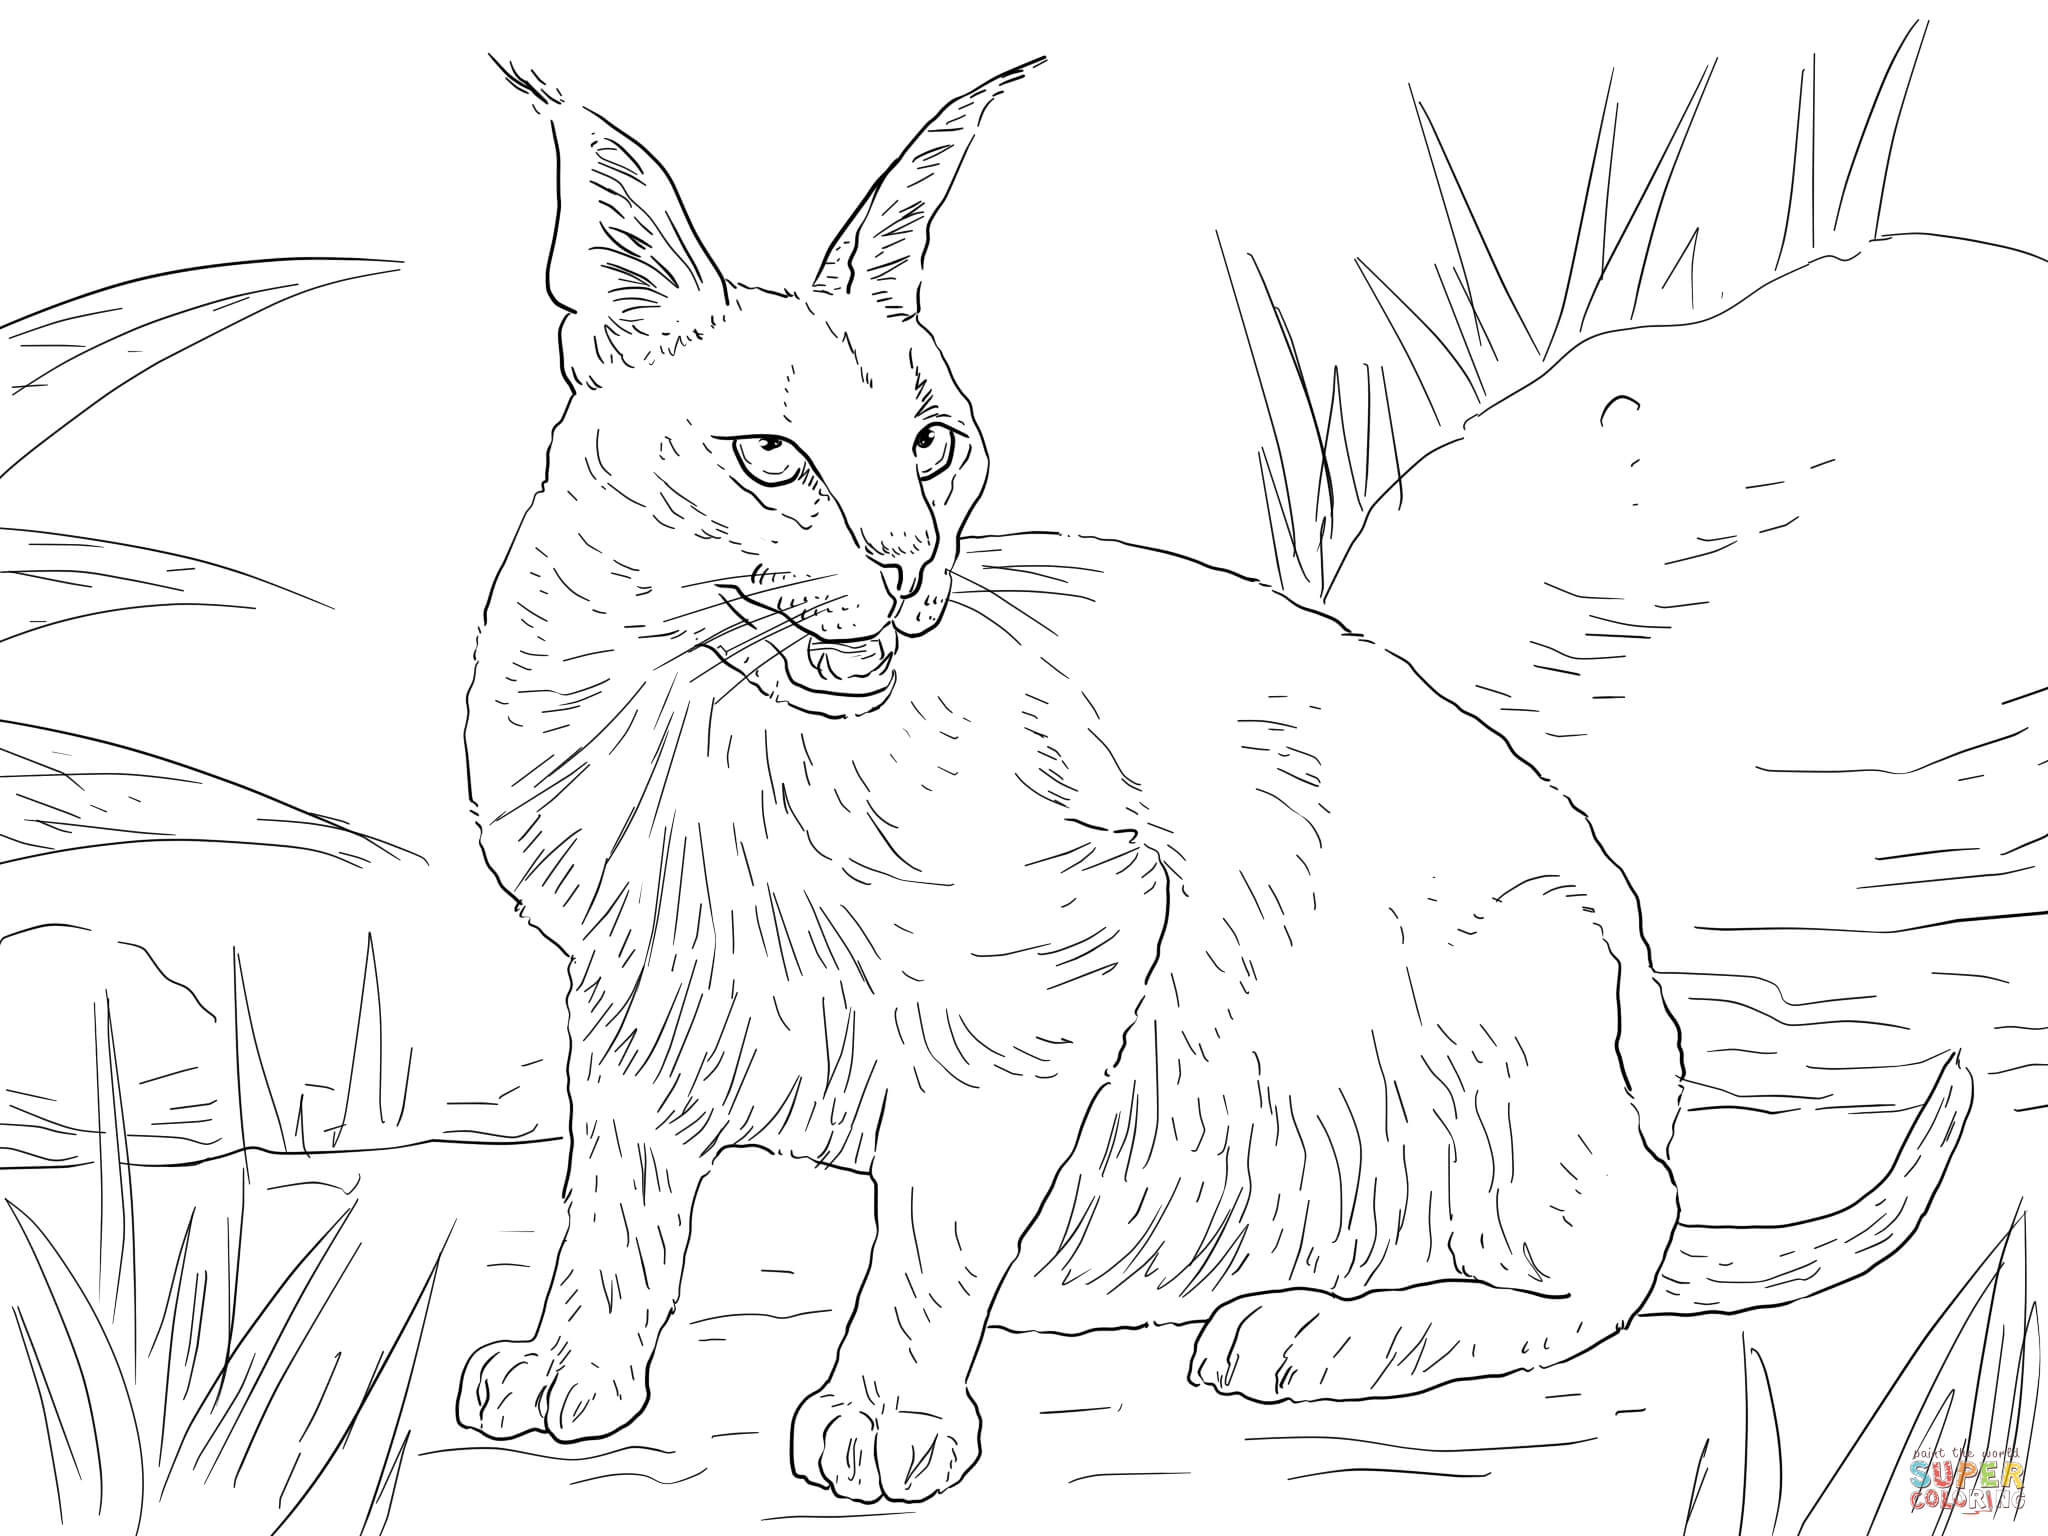 wild cat coloring pages hard owl coloring pages tiger liked wild cat in the wild cat coloring pages wild